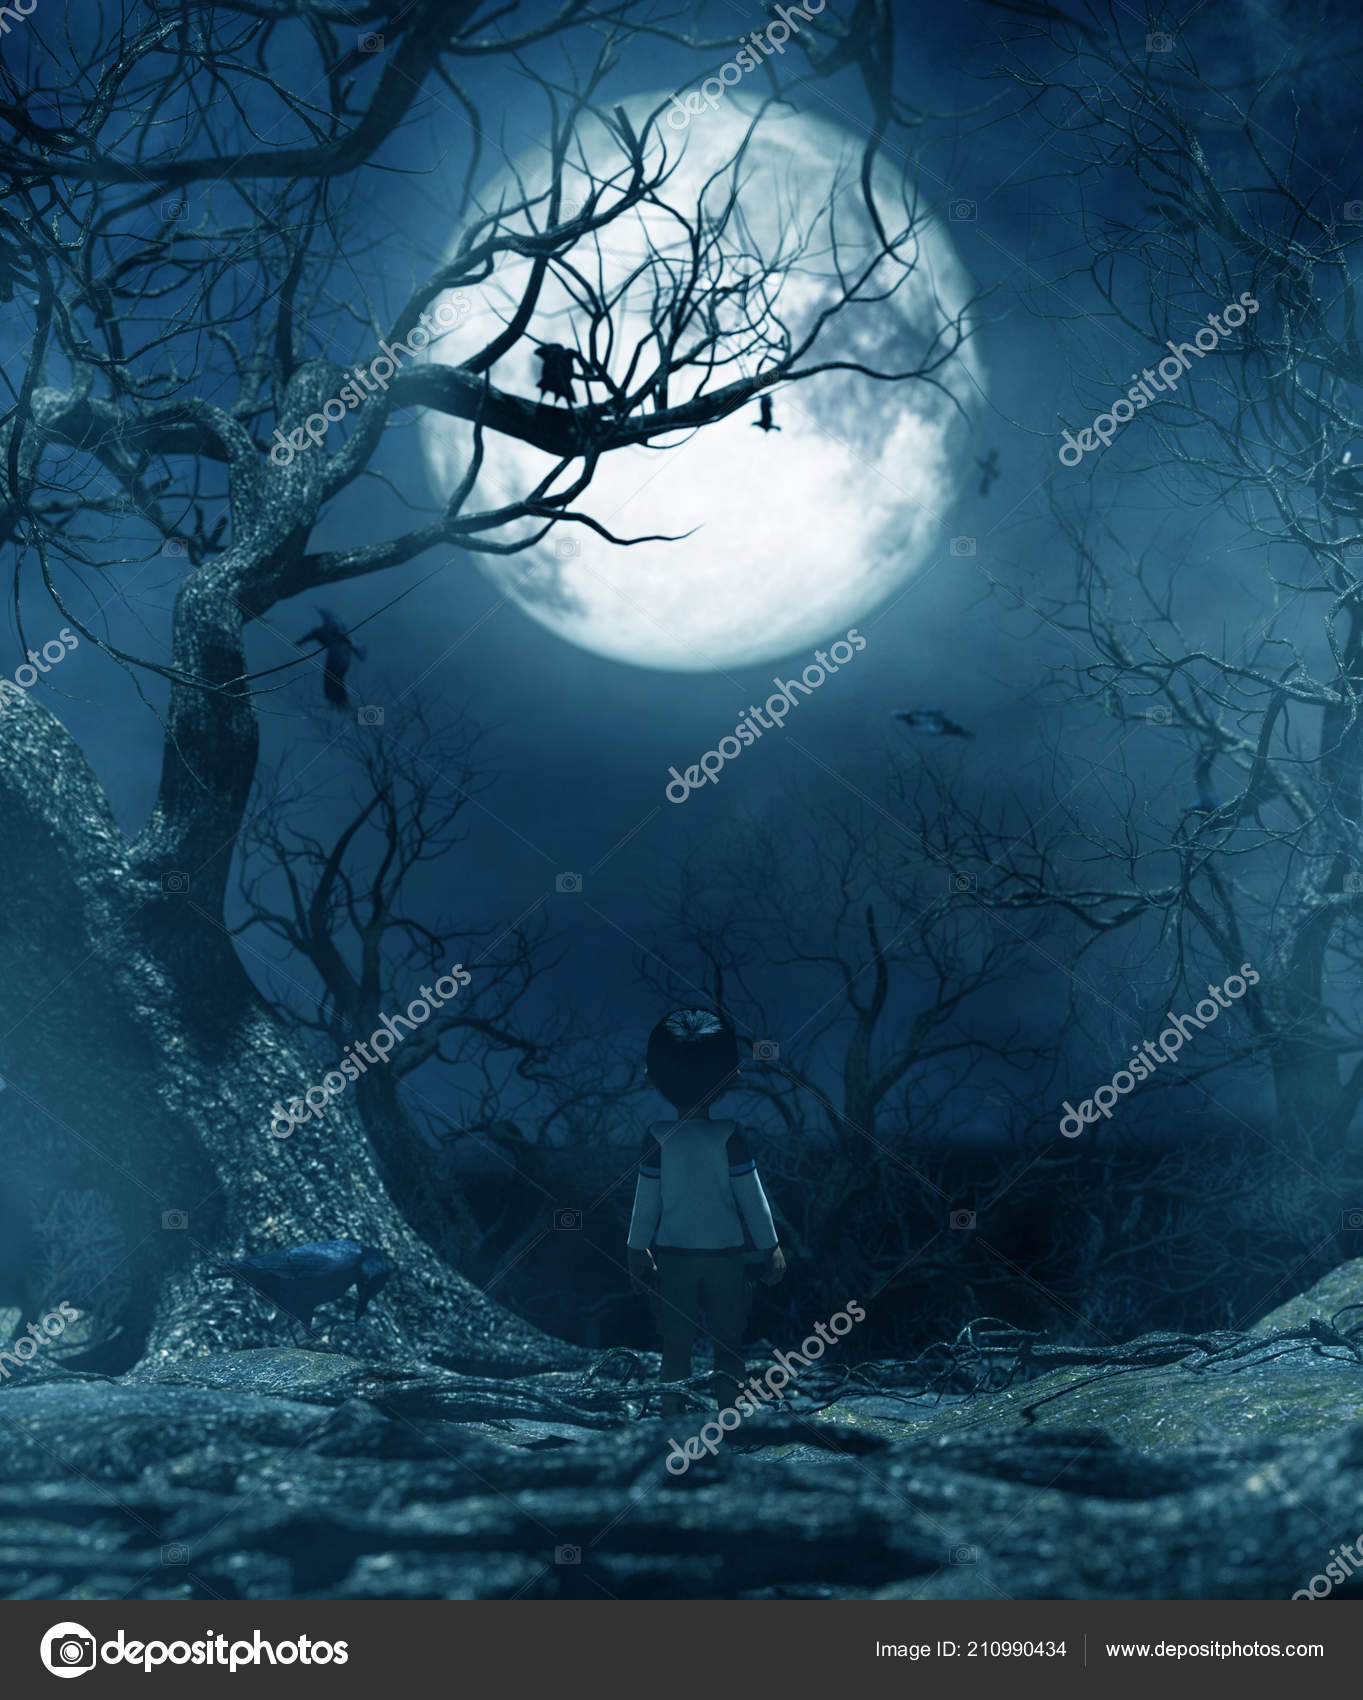 Boy walking alone at night under the moonlightboy lost in the haunted forest3d rendering for book cover or book illustration stock image